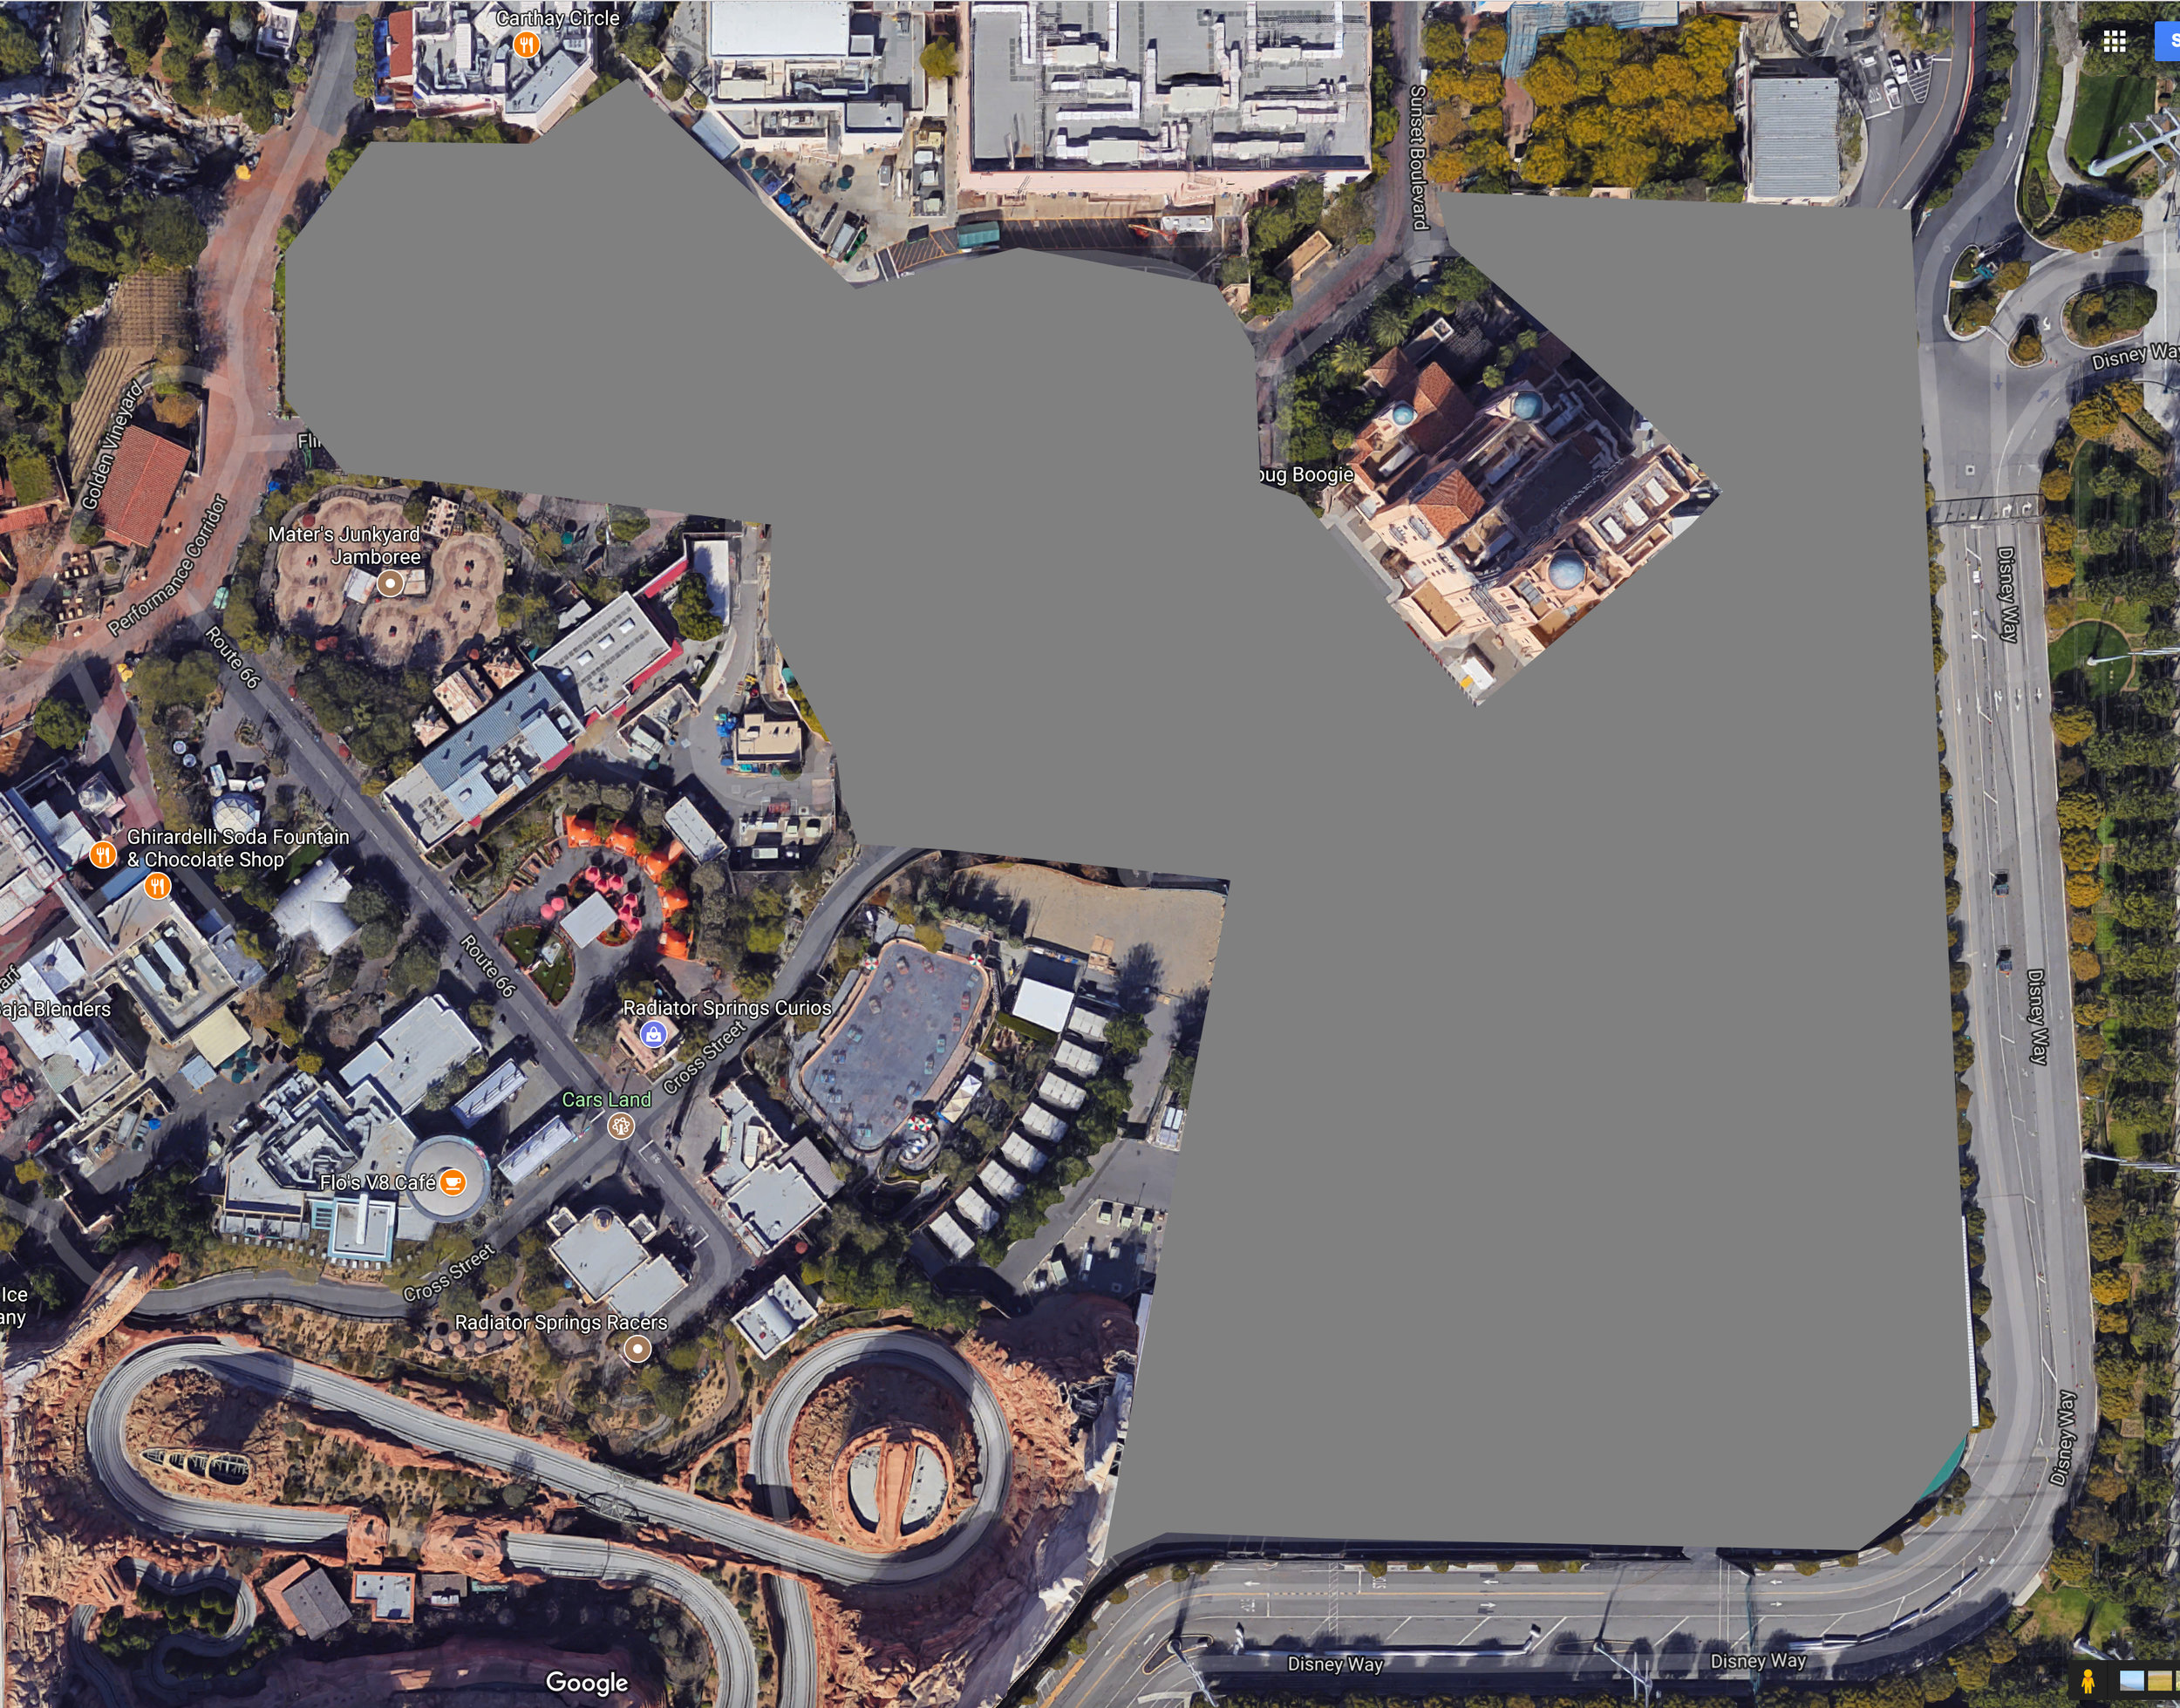 Possible area for future Marvel Land expansion project.